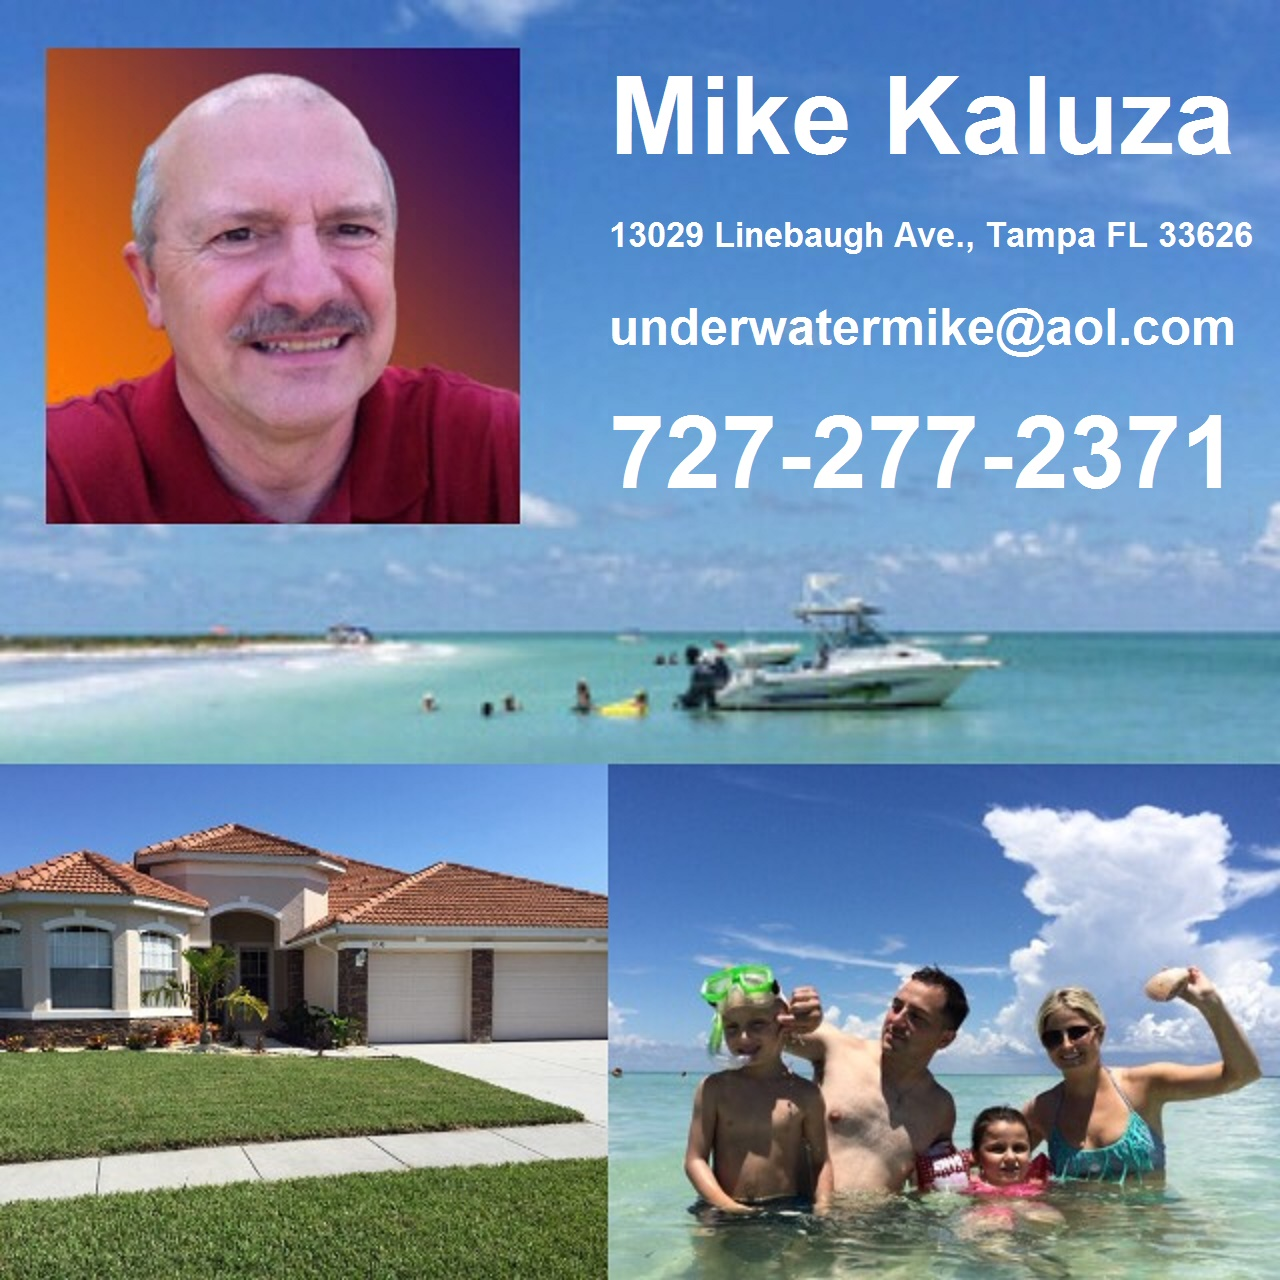 http://www.polishfloridabiz.com/001-mike-kaluza-realtor-at-future-home-realty/